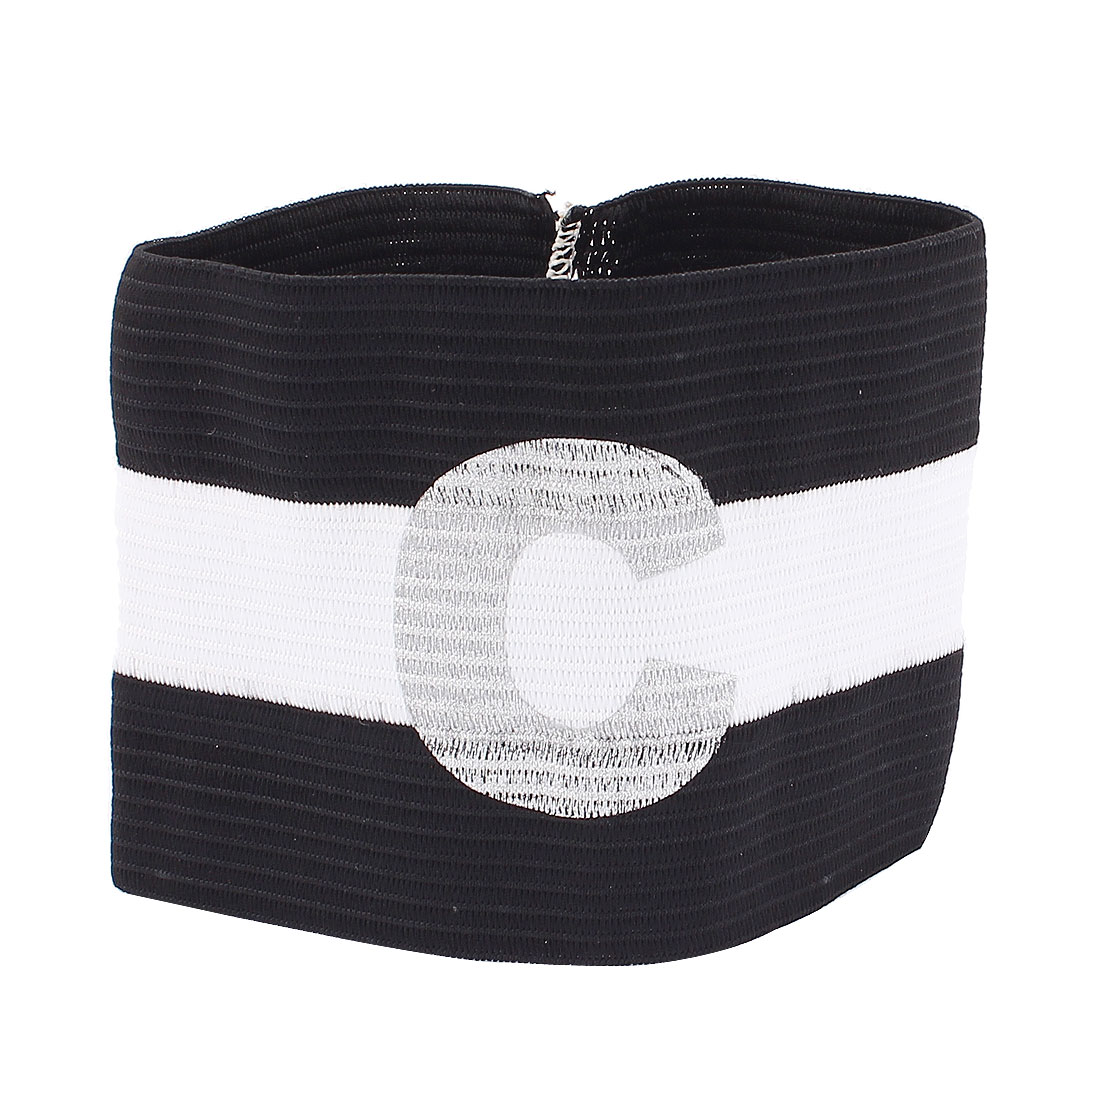 White Black Stripe Design Stretchy Football Soccer Sports Match Captain Armband Sleeve Badge